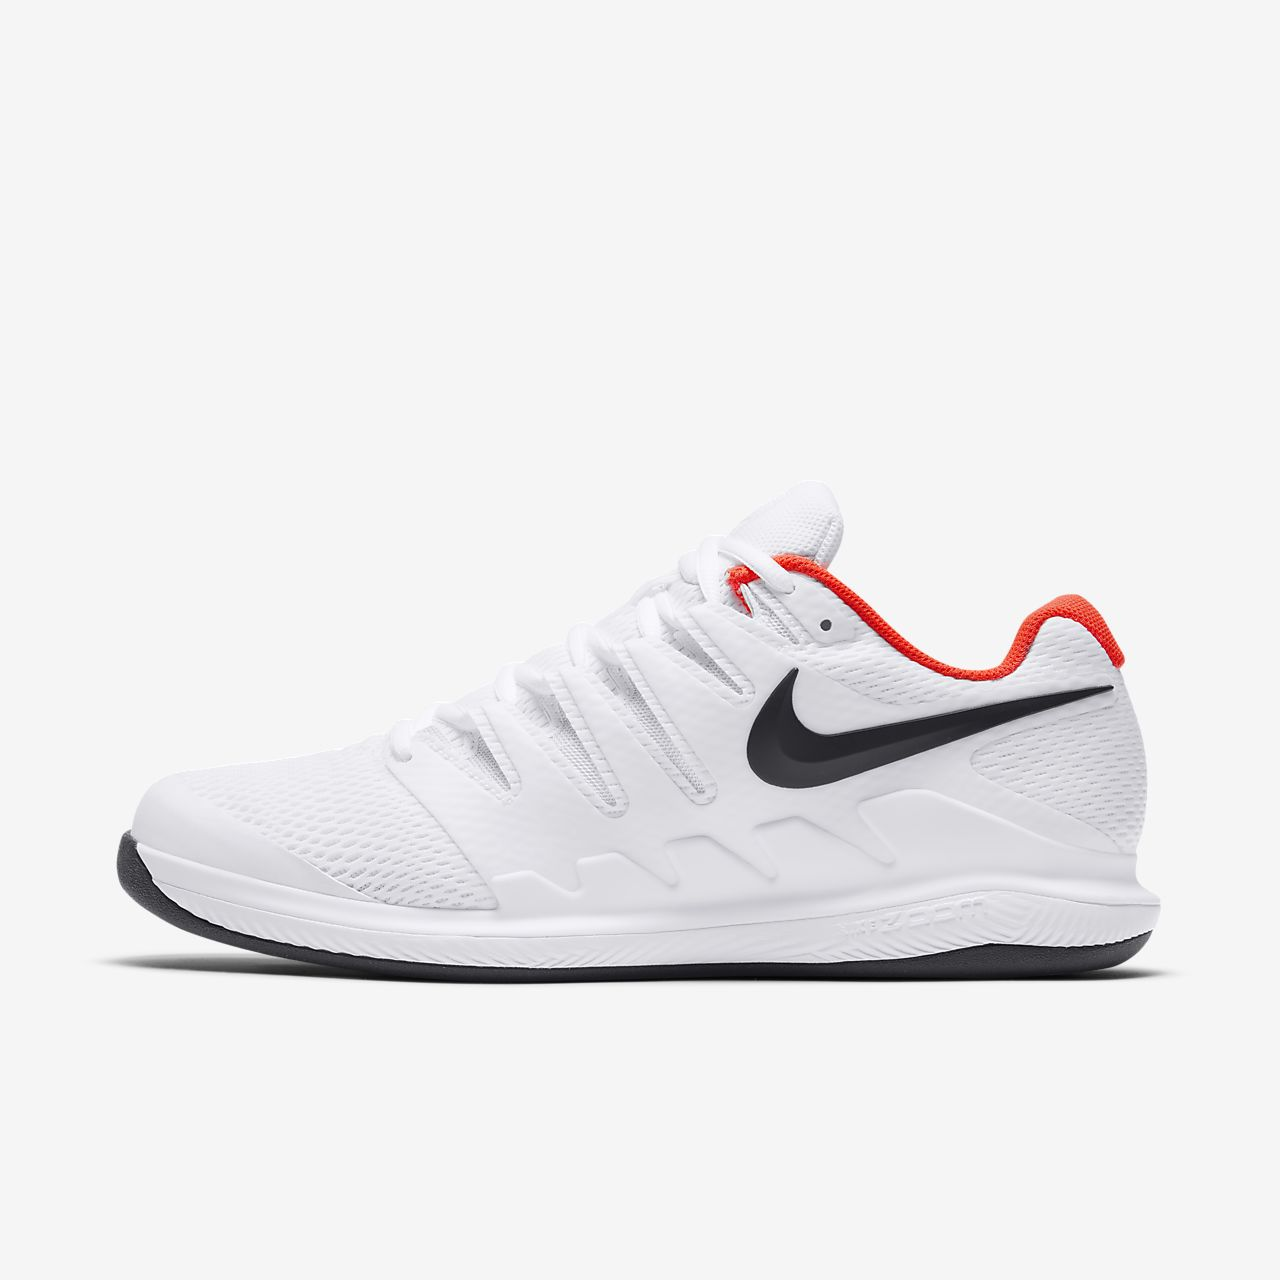 Nike Air Zoom Vapor X Carpet Men's Tennis Shoe